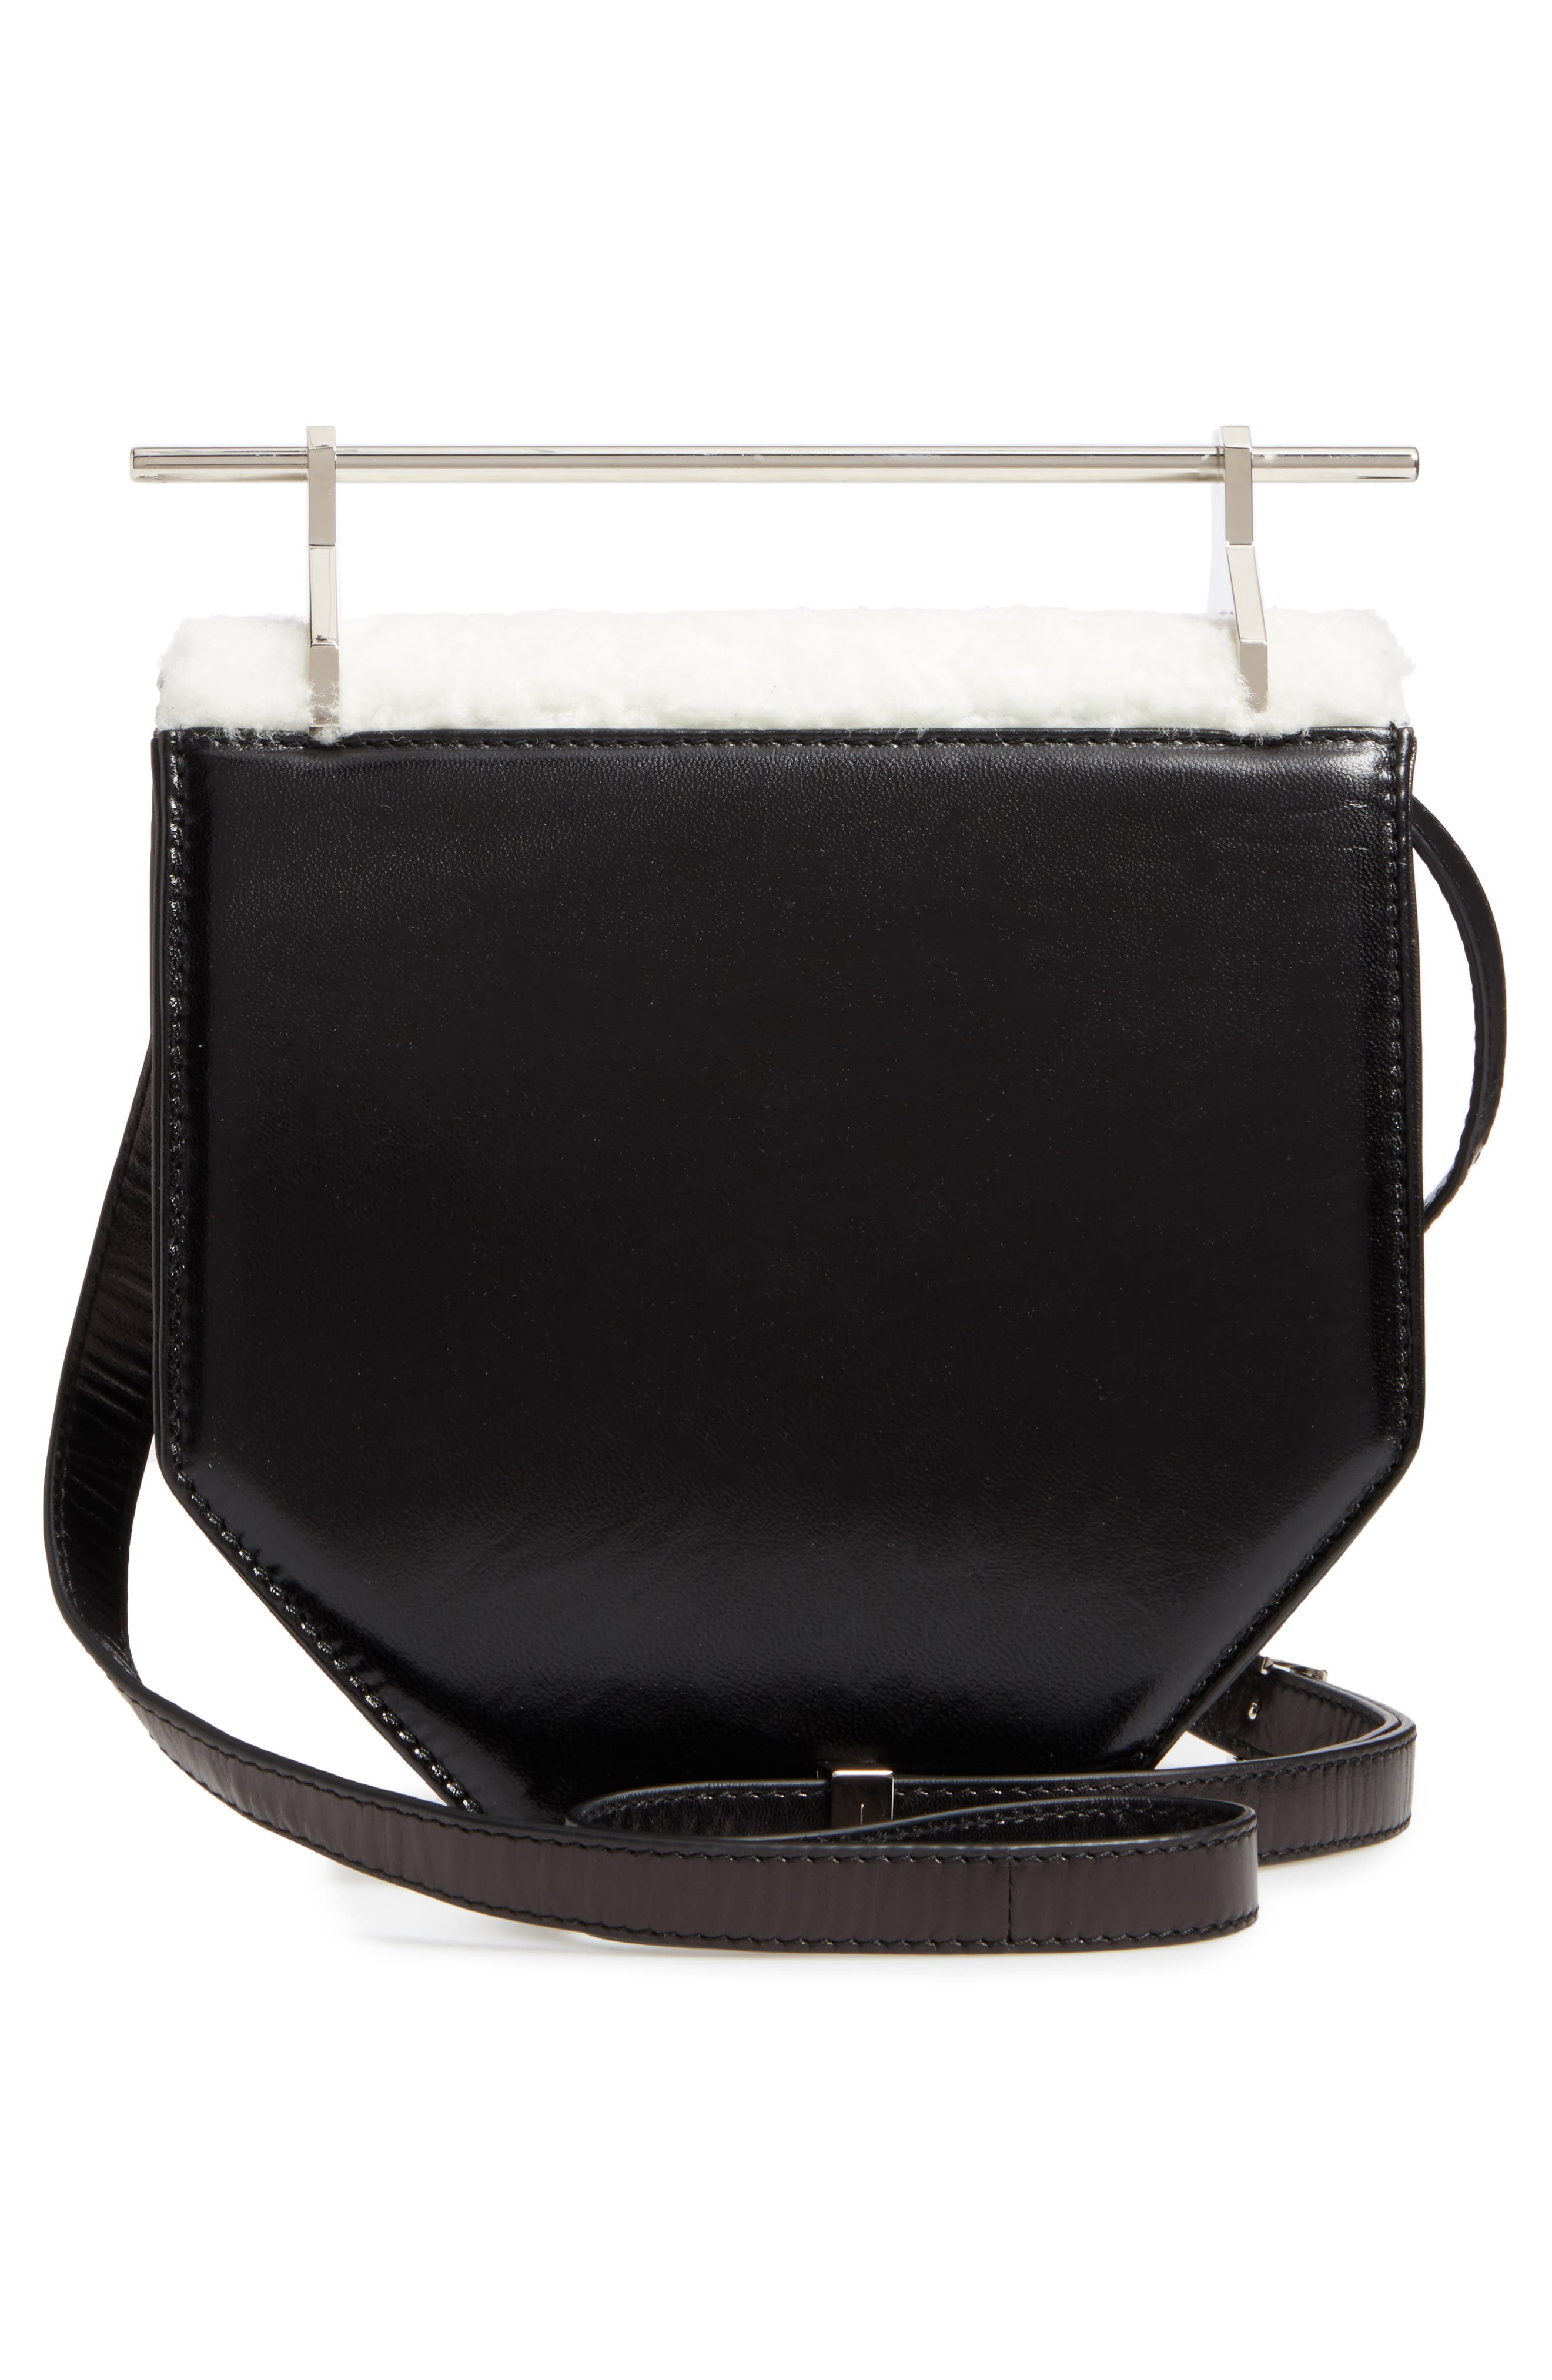 Amor Fati Leather & Genuine Shearling Shoulder Bag,                             Alternate thumbnail 2, color,                             Black/ White/ Silver